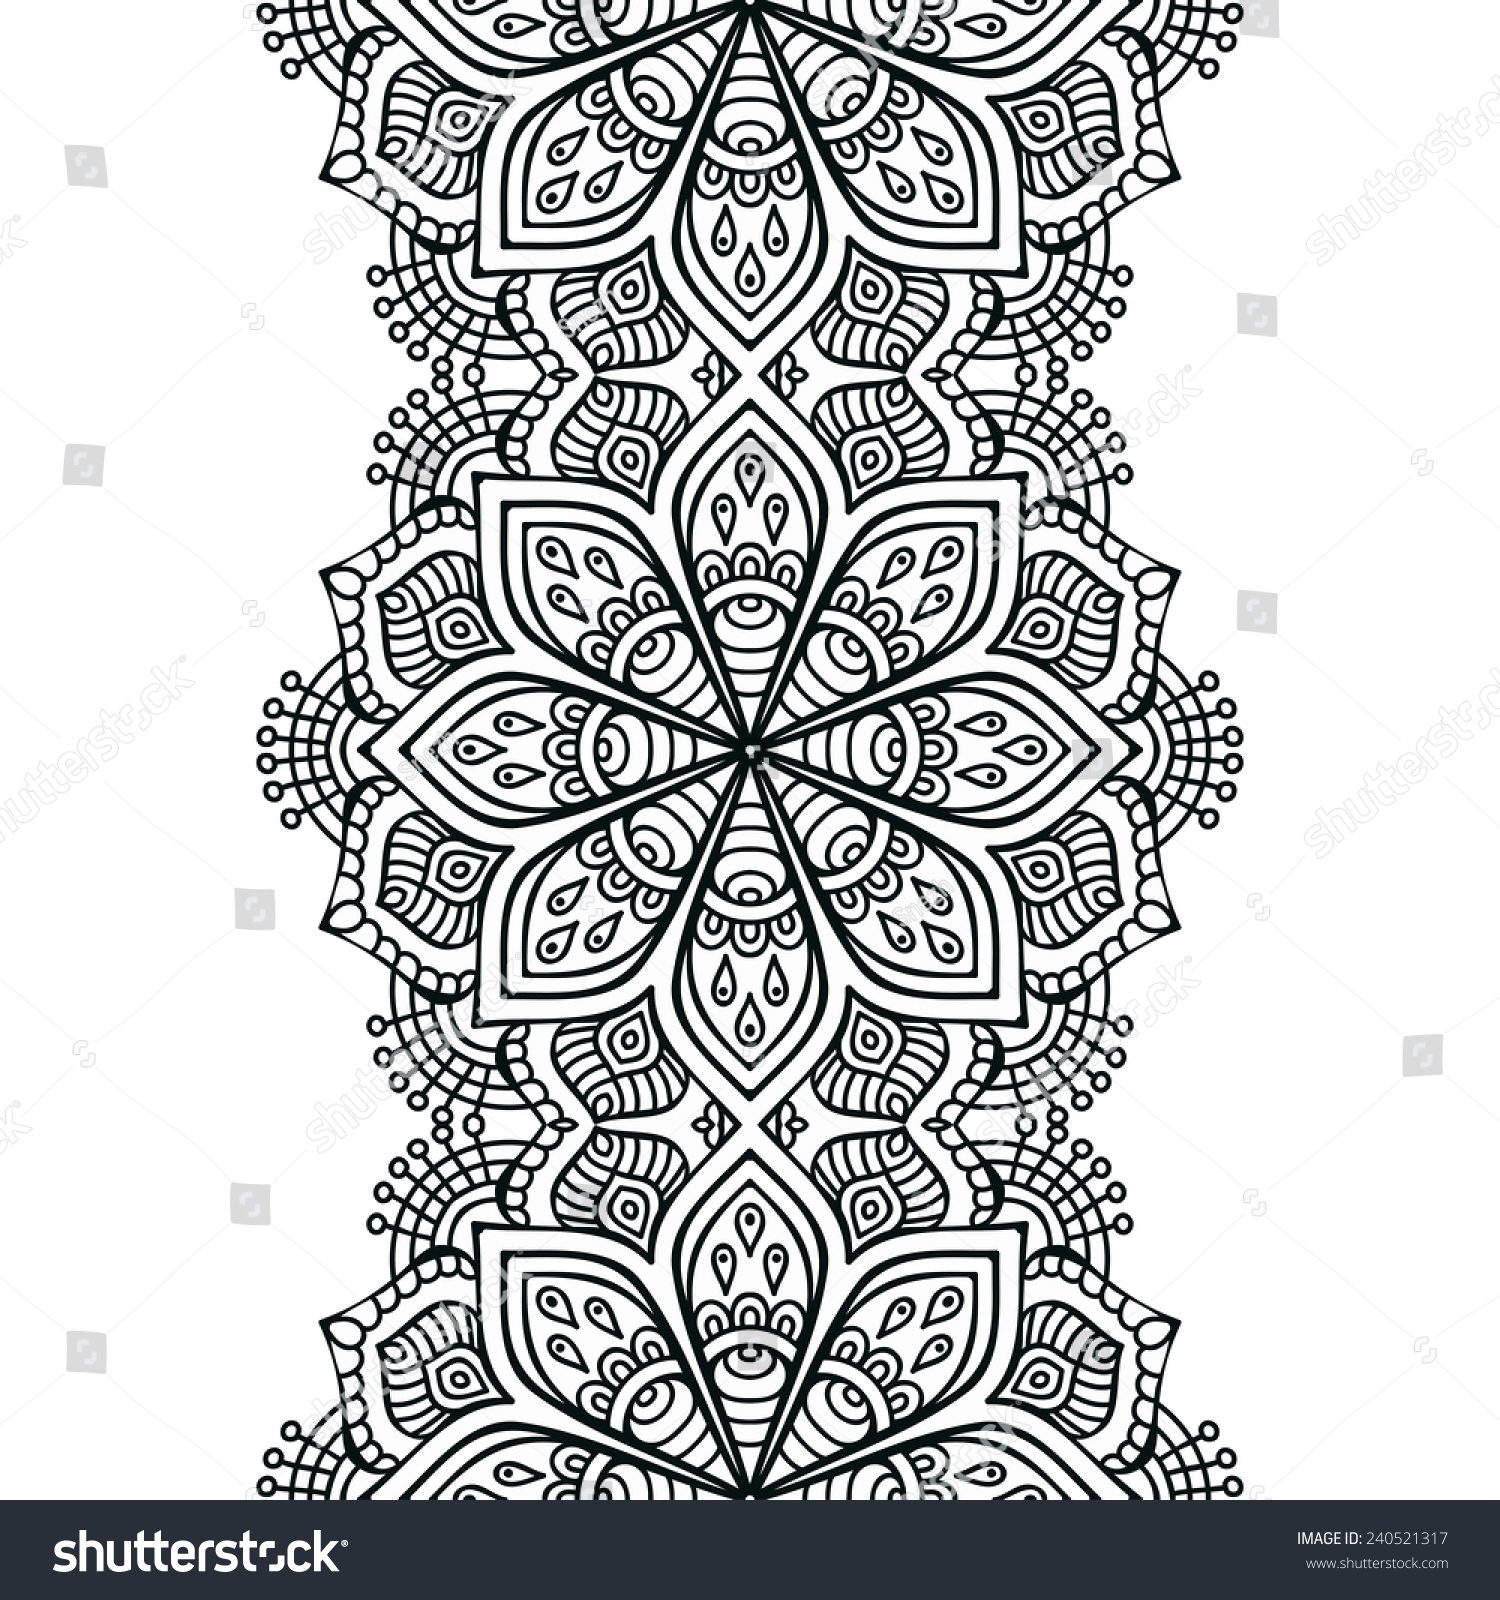 Indian patterns vector - photo#13